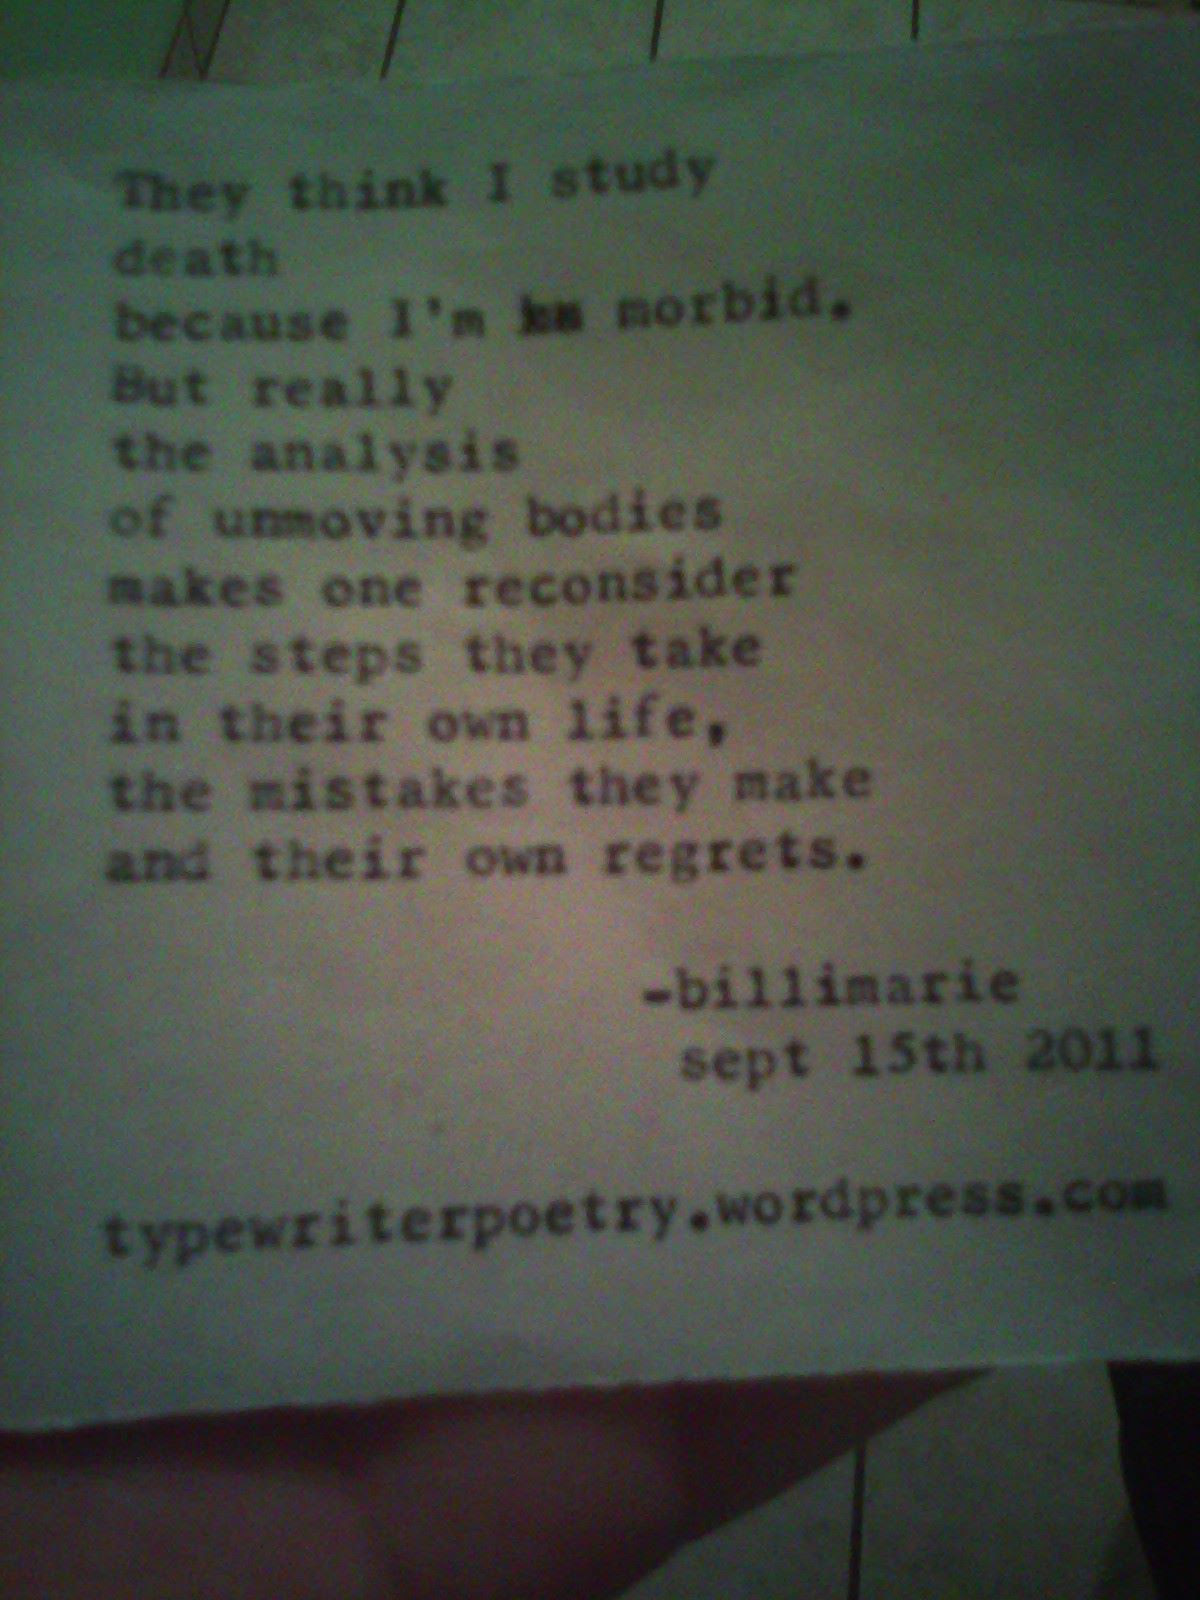 Download this Mortician Quot Billimarie picture